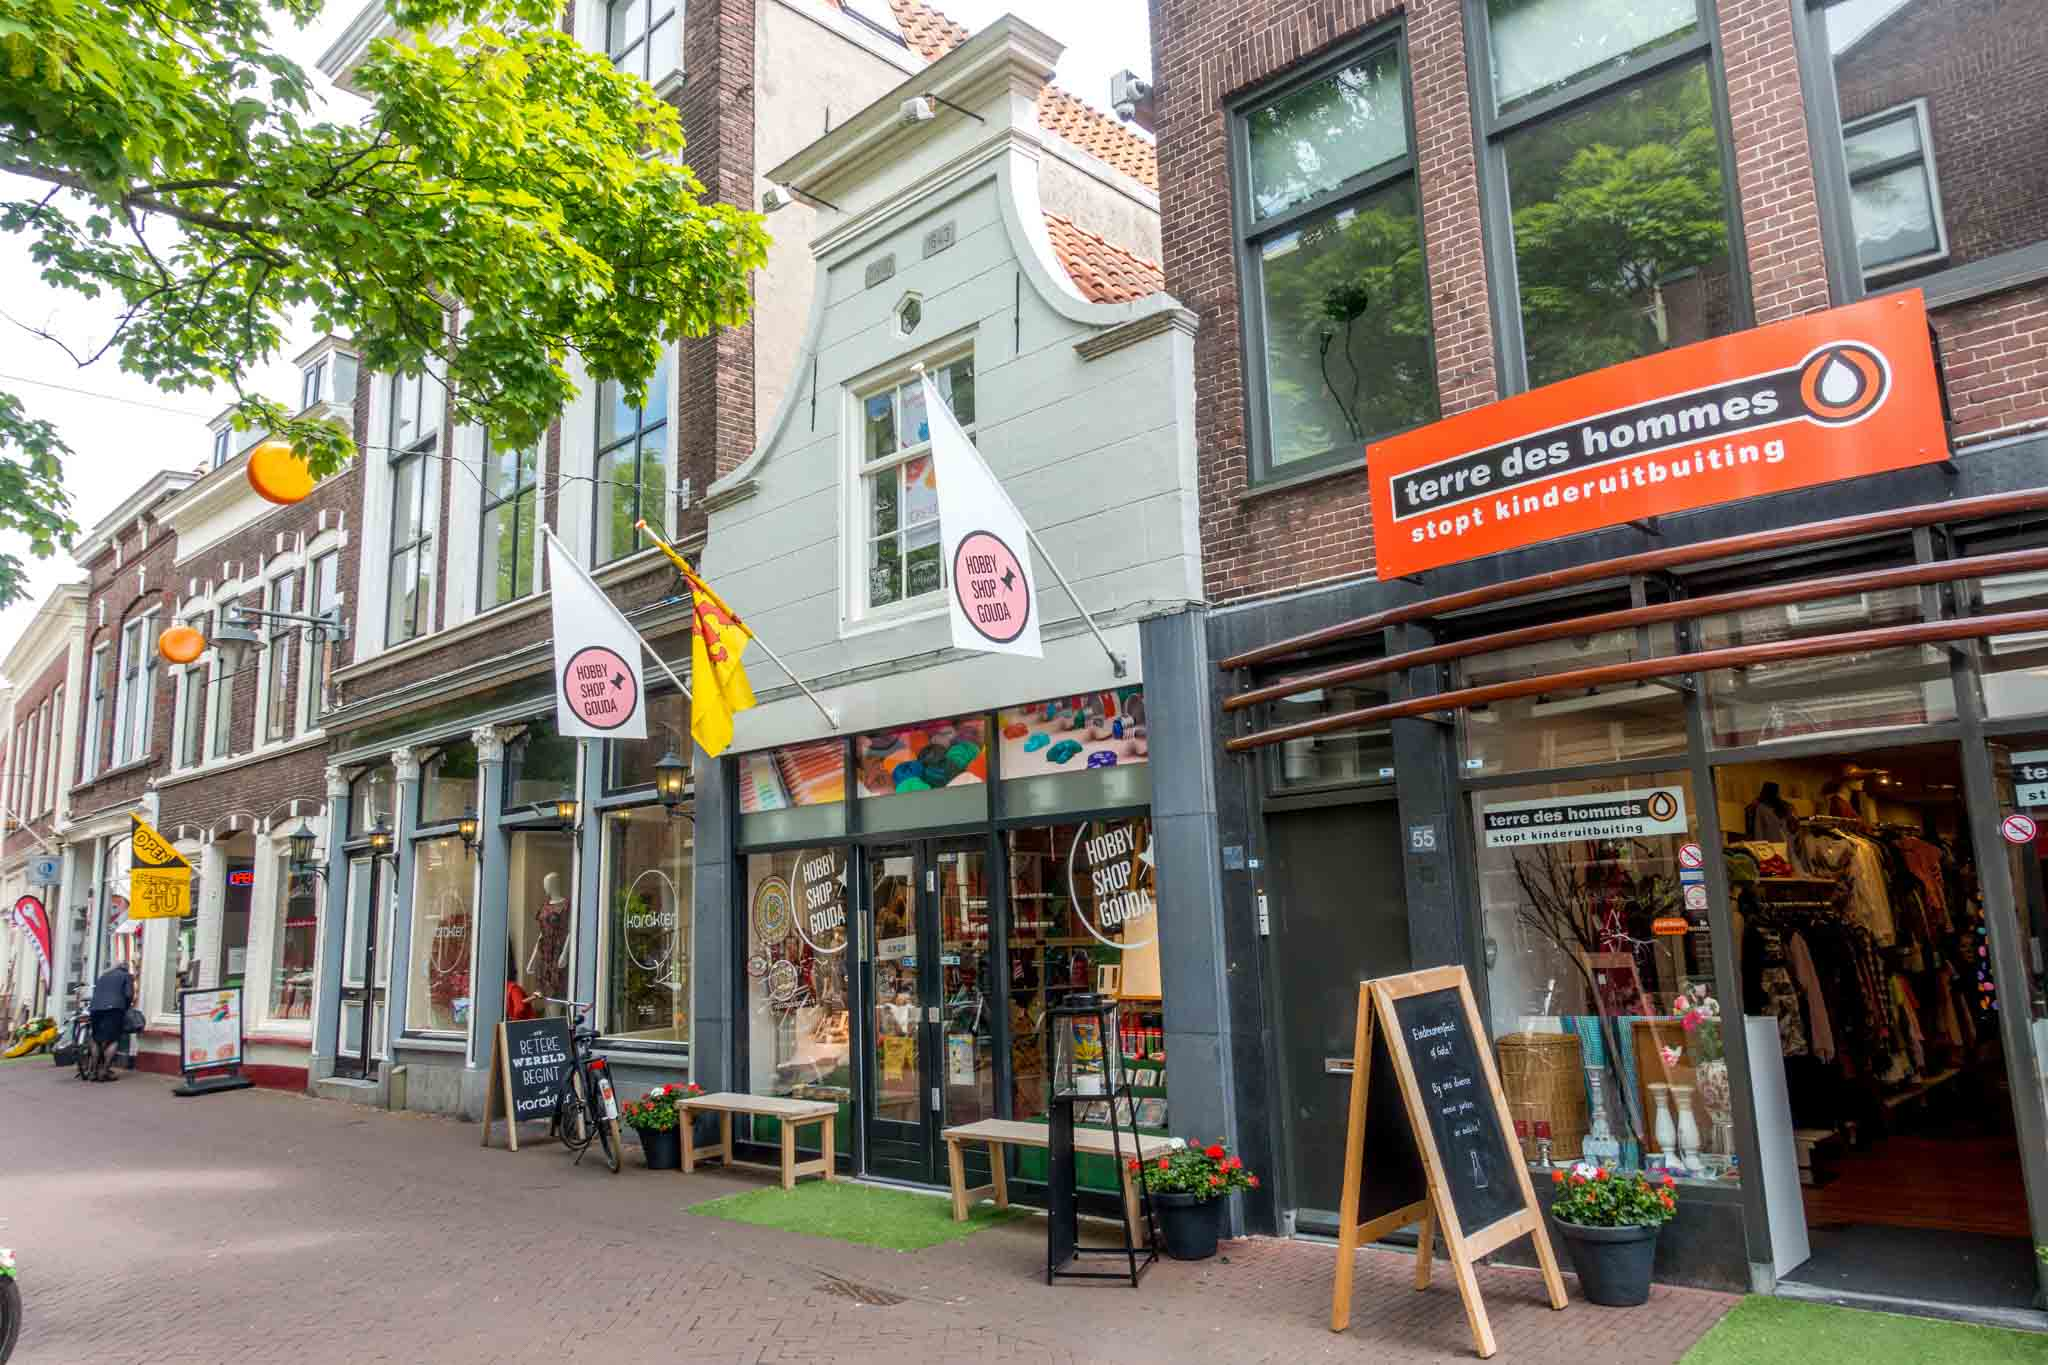 If you're wondering what to do in Gouda, take some time to shop on Lange Groendaal